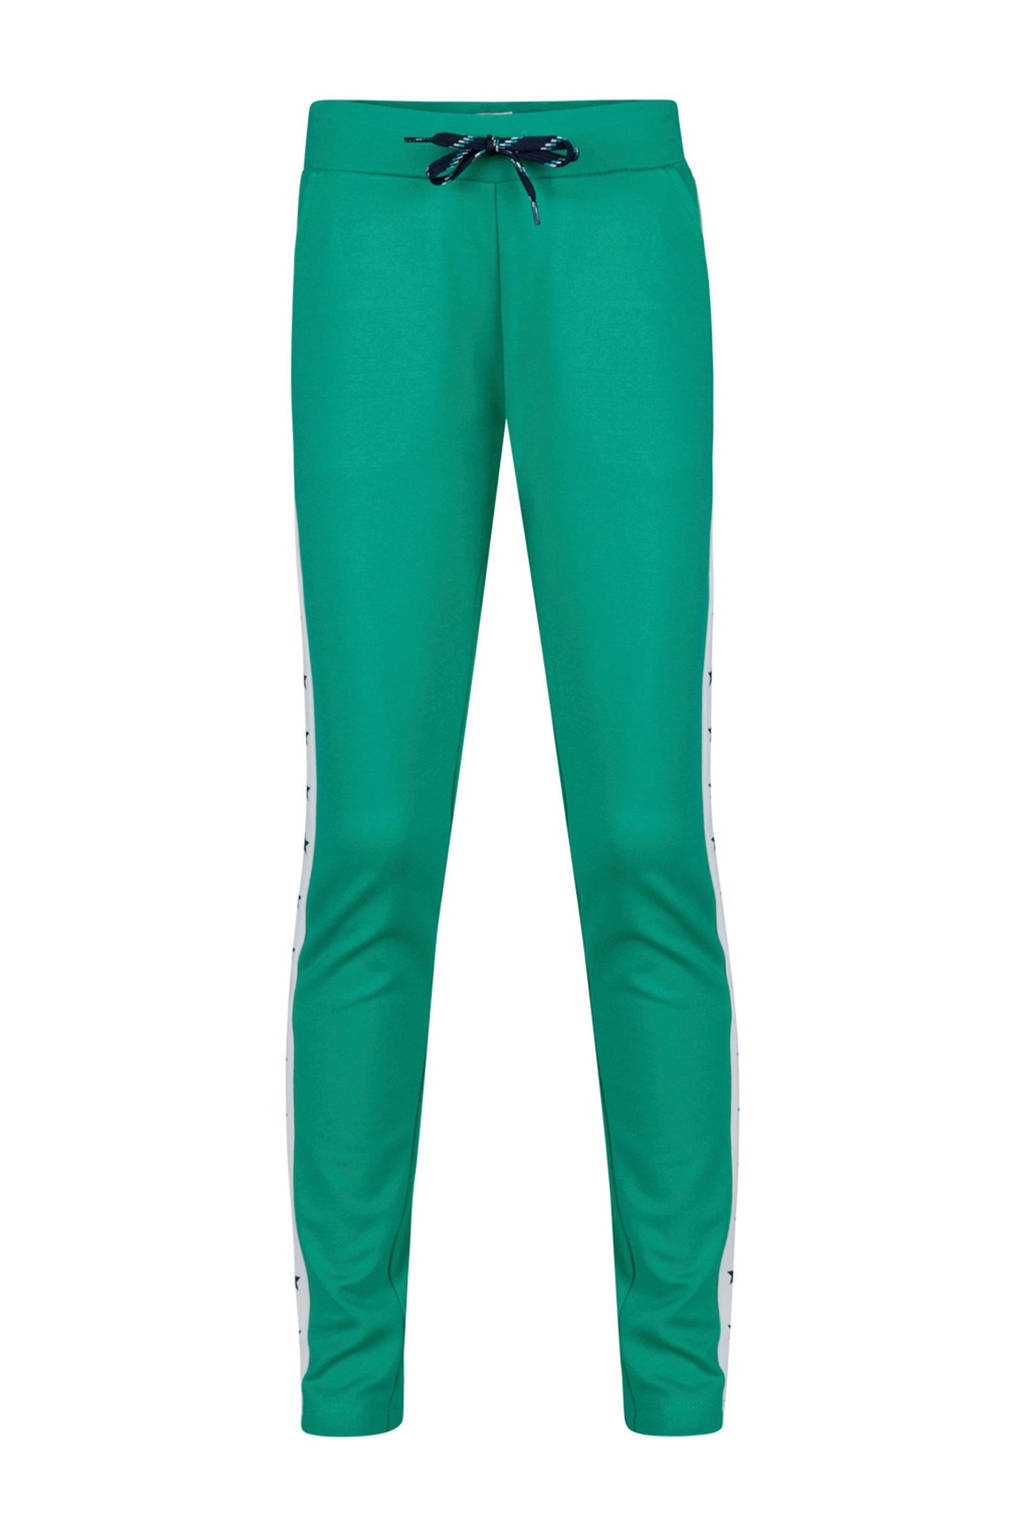 WE Fashion sweatpants met sterren groen, Groen